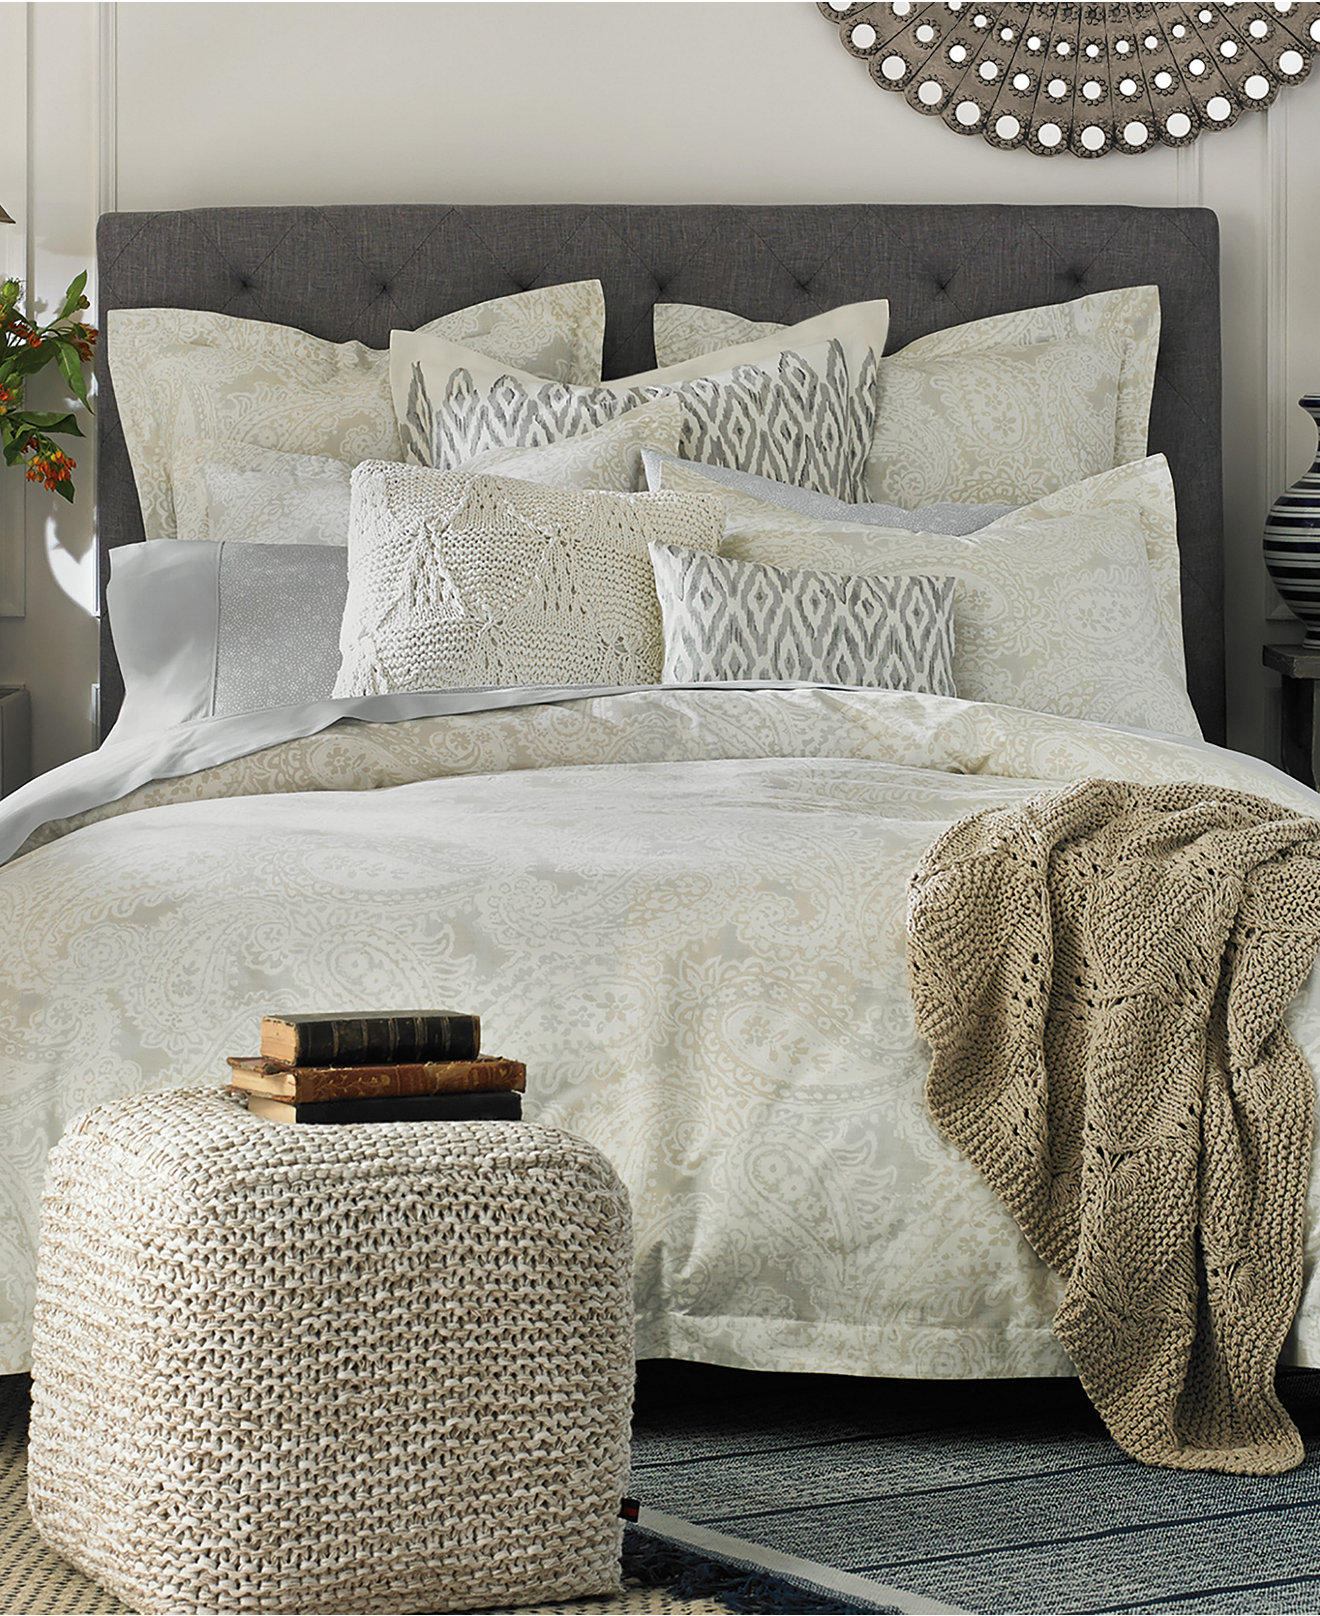 bedding collections  macy's - tommy hilfiger mission paisley bedding collection  thread count cotton